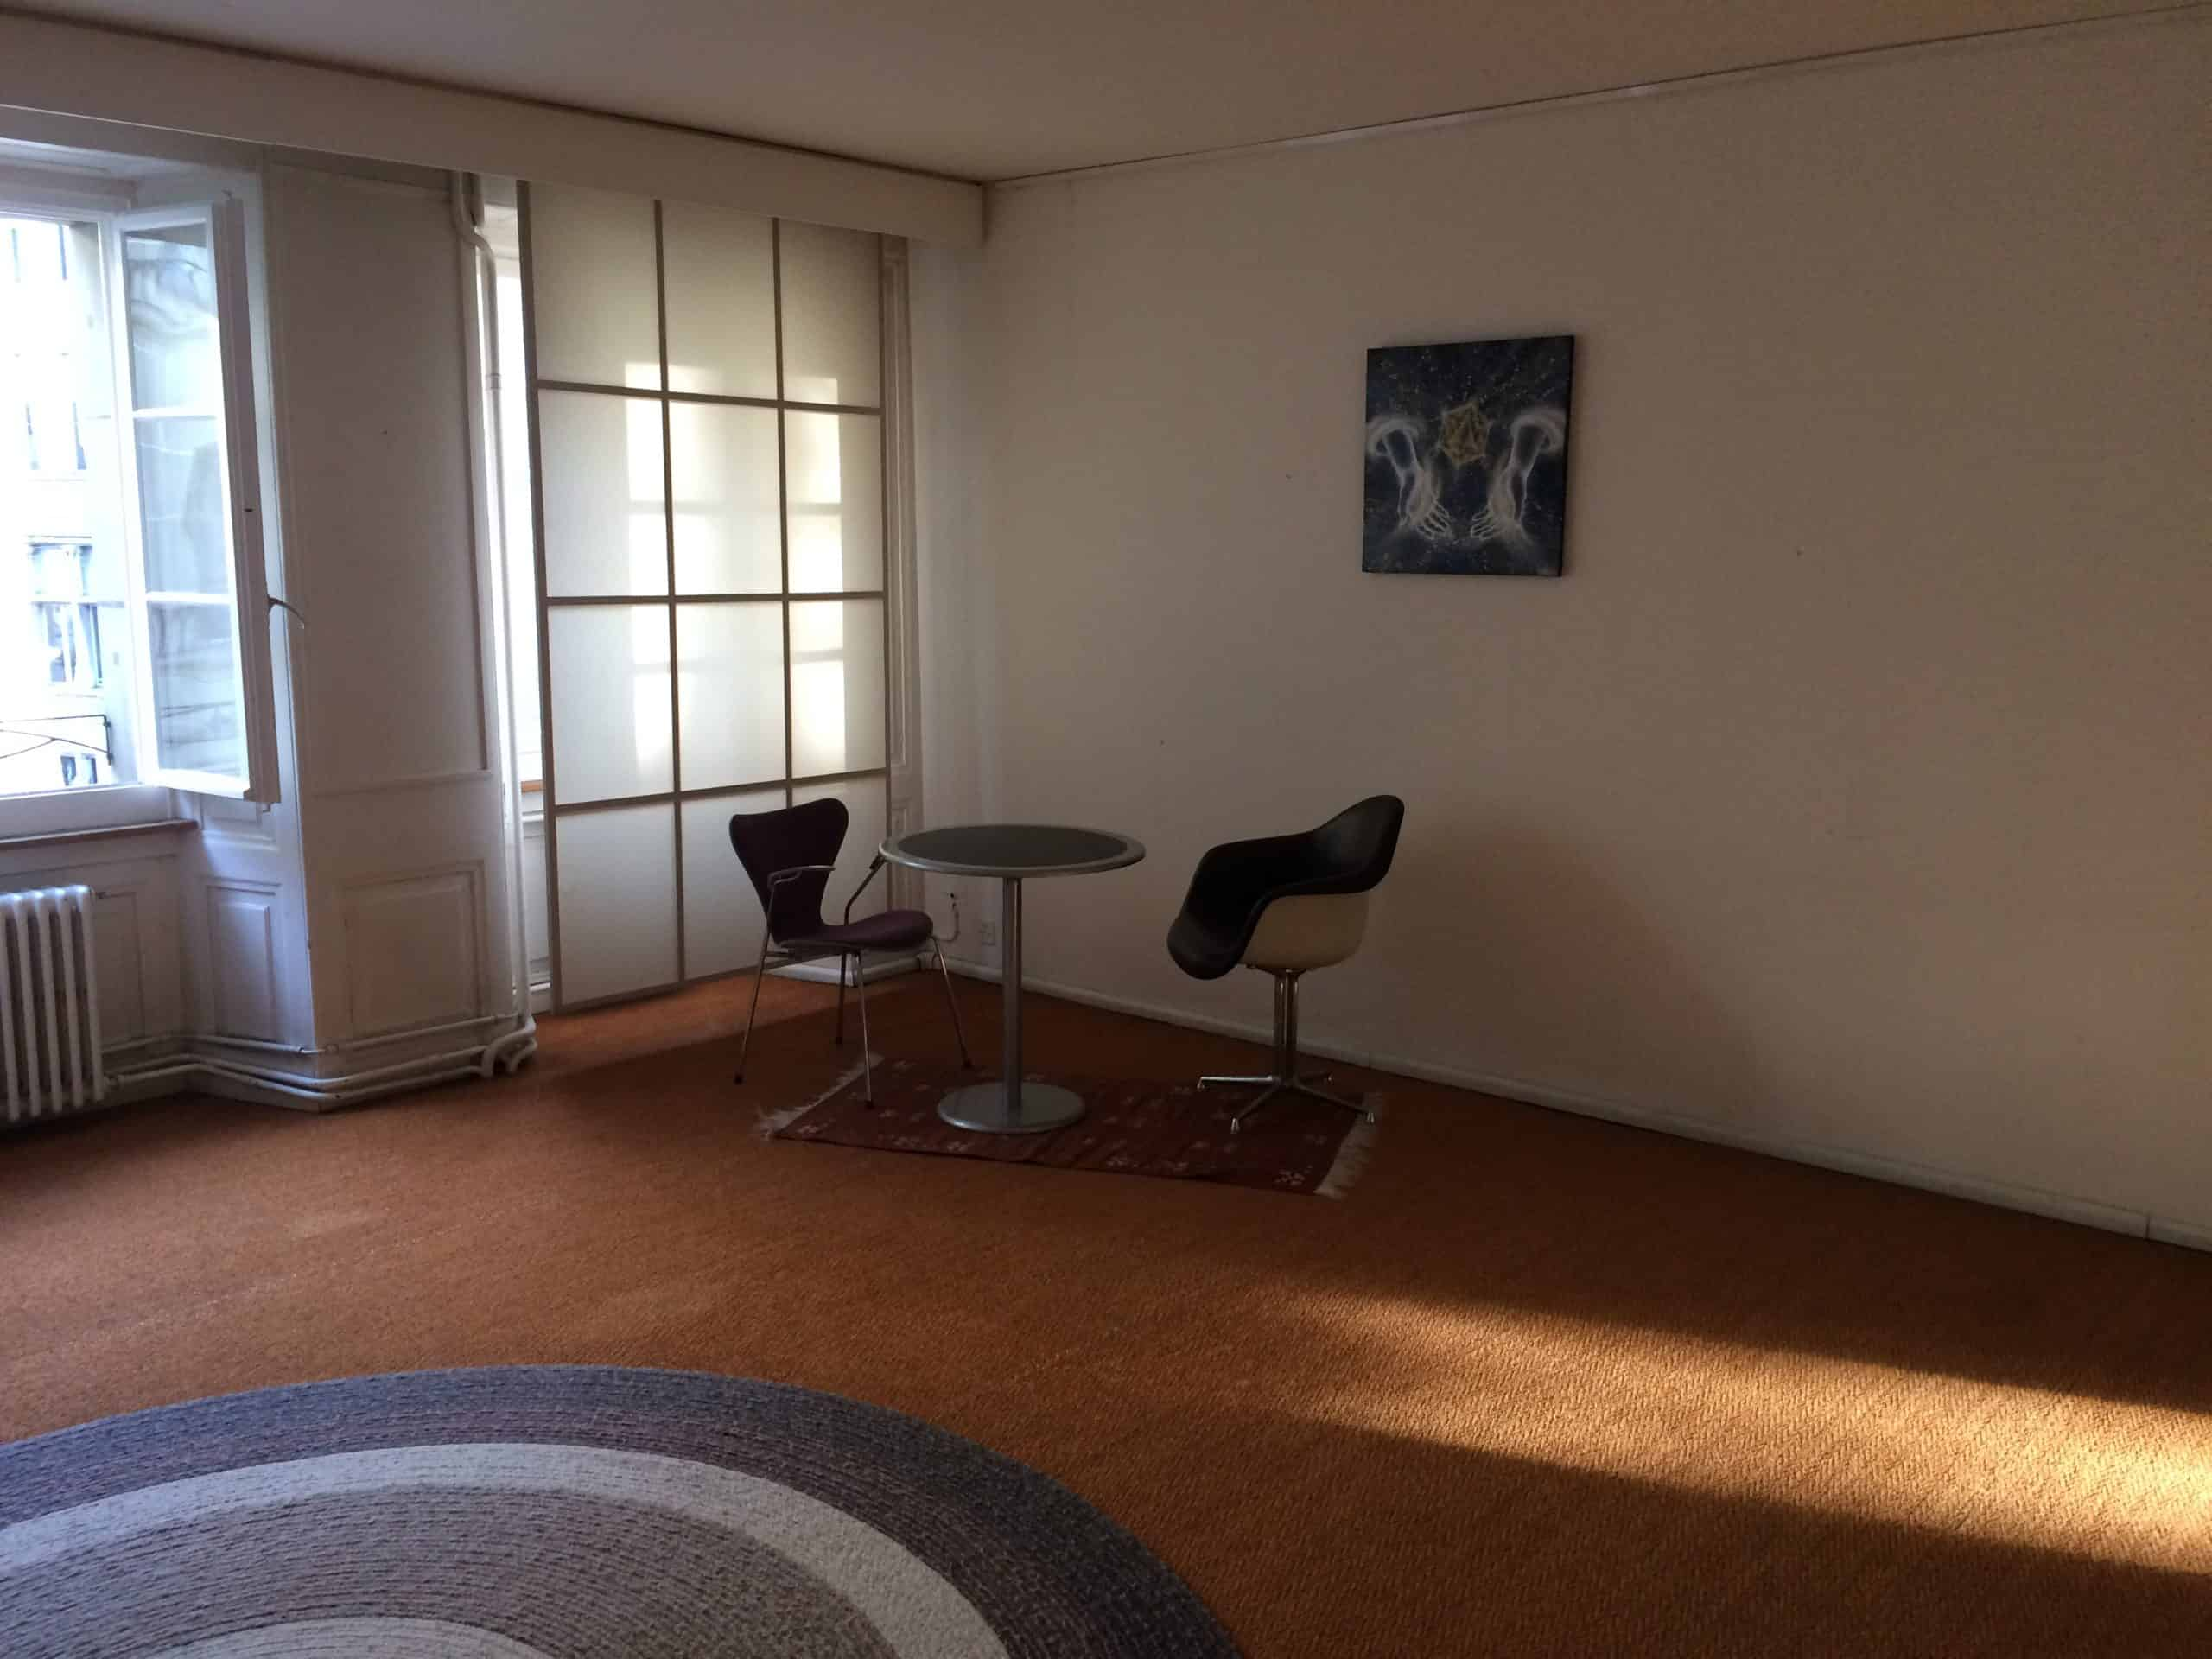 Salle 2 scaled